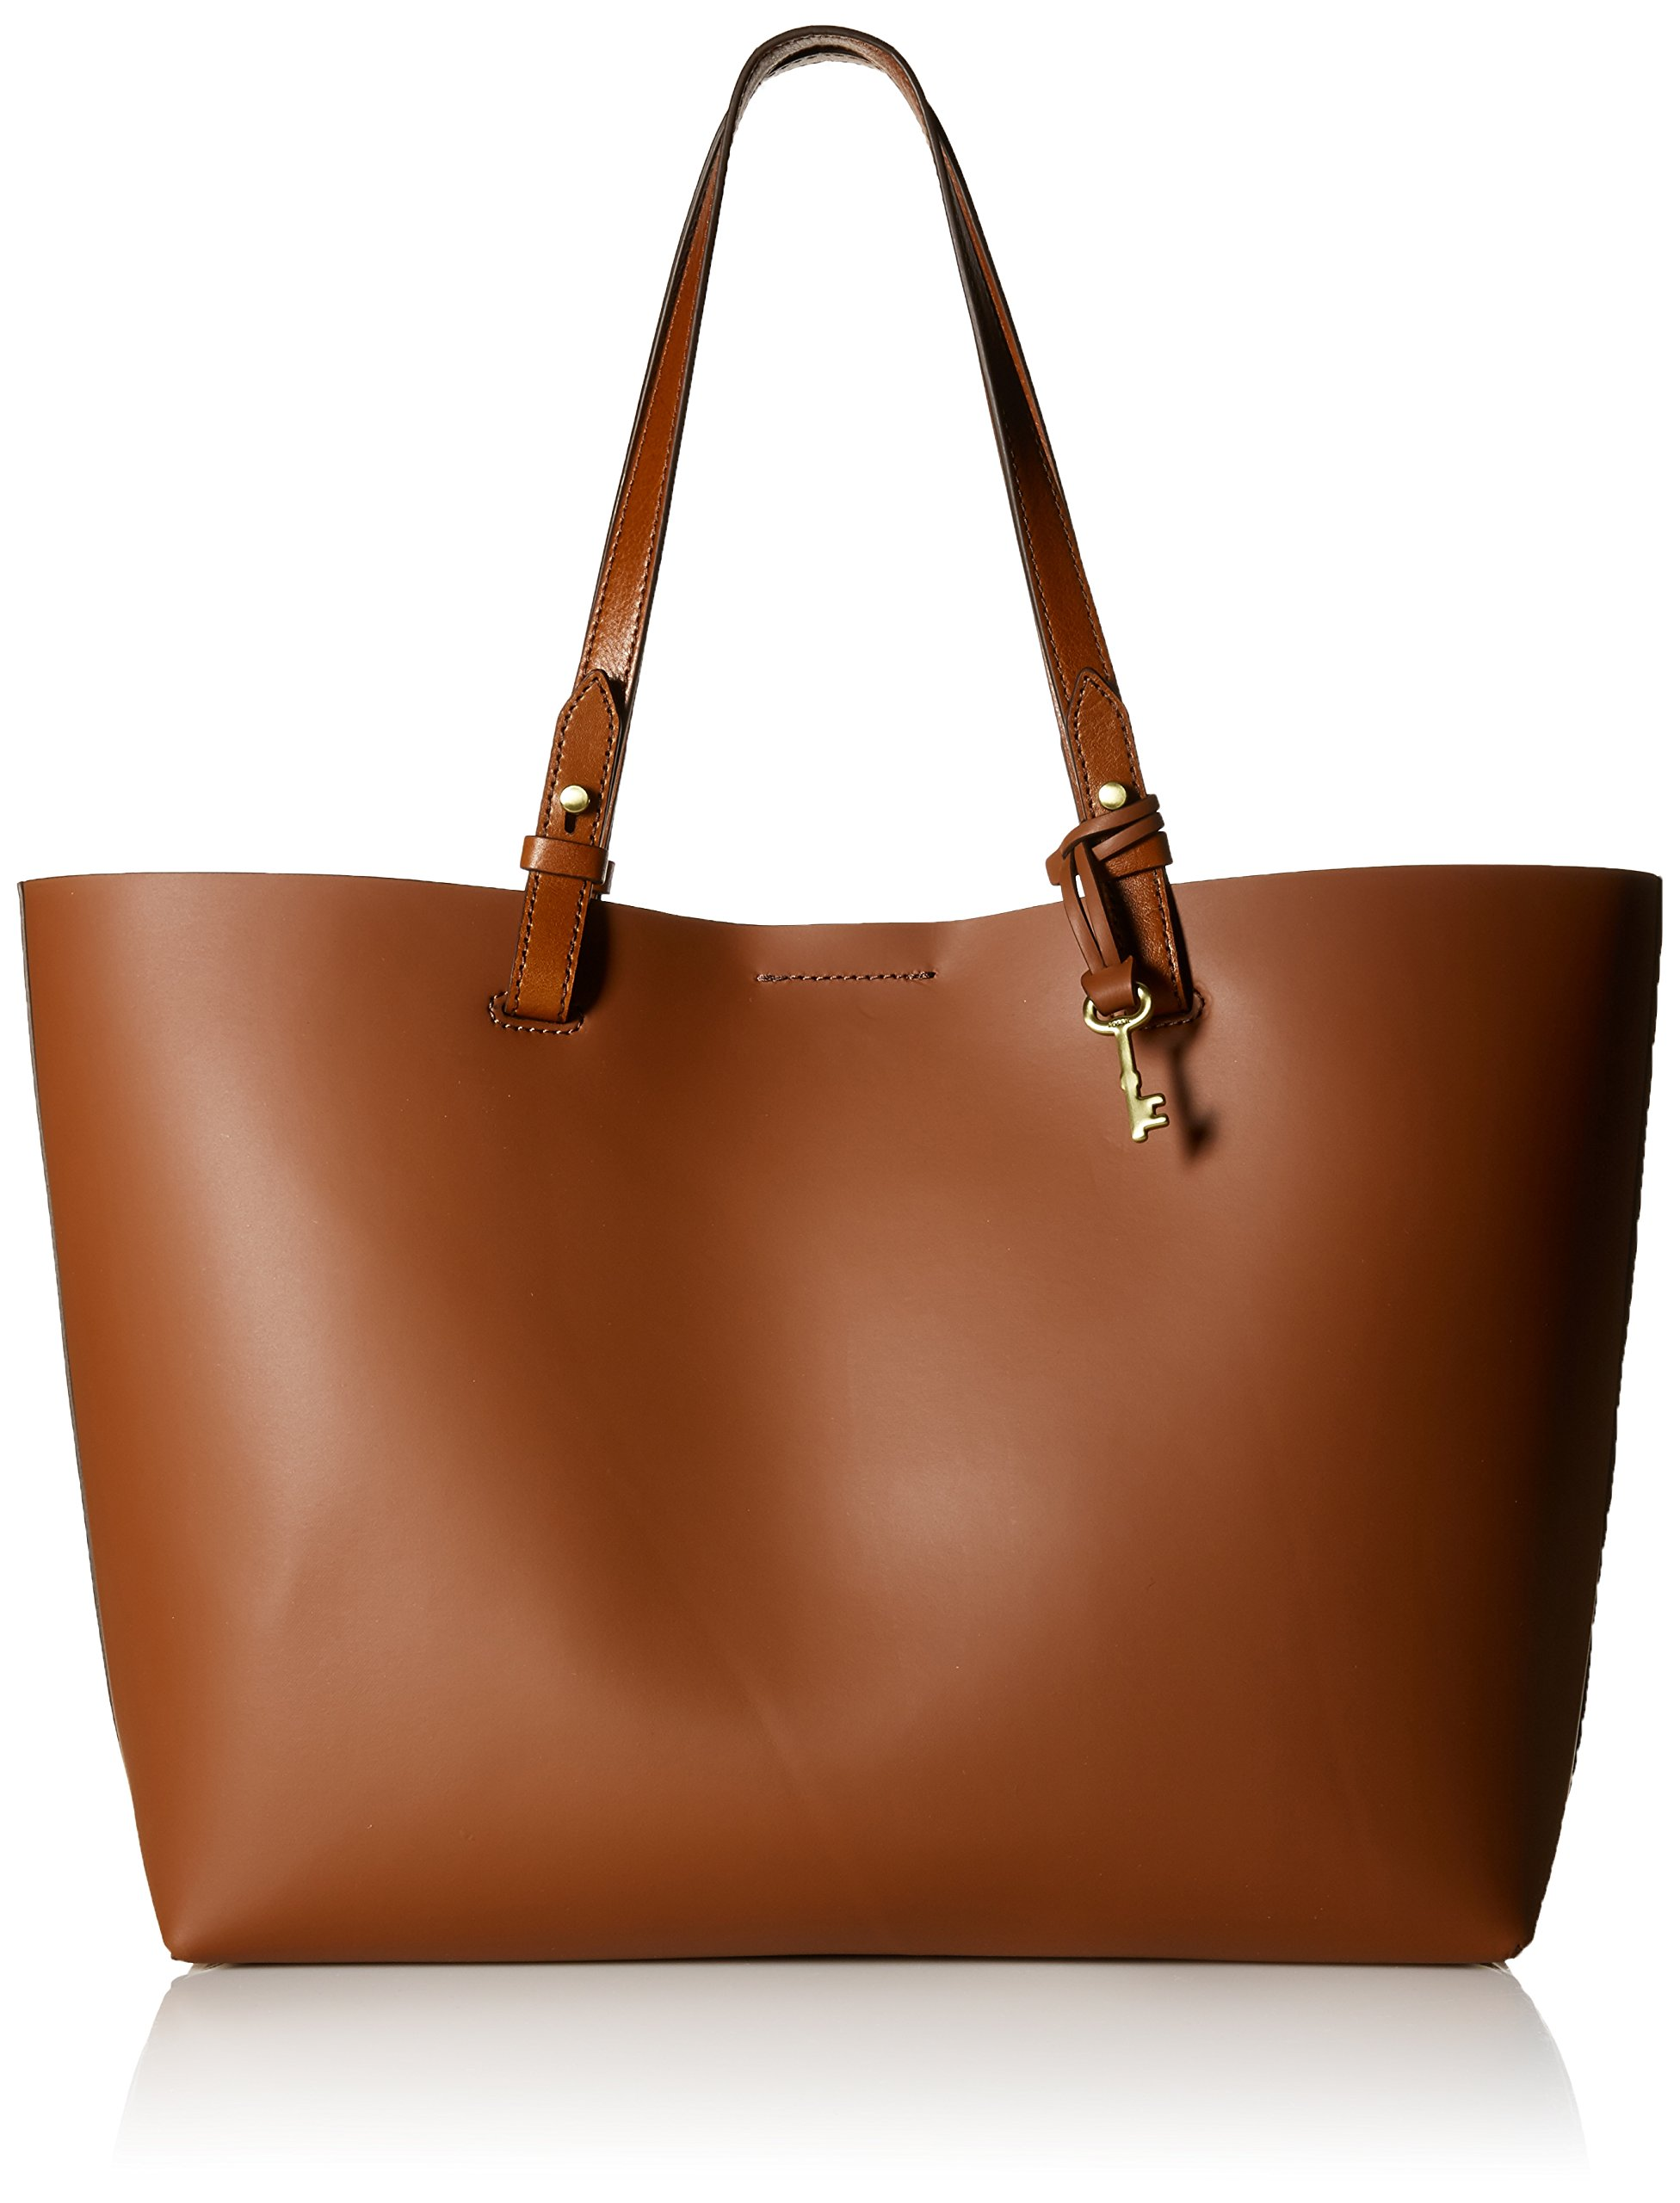 Fossil Rachel Tote, Brown, One Size